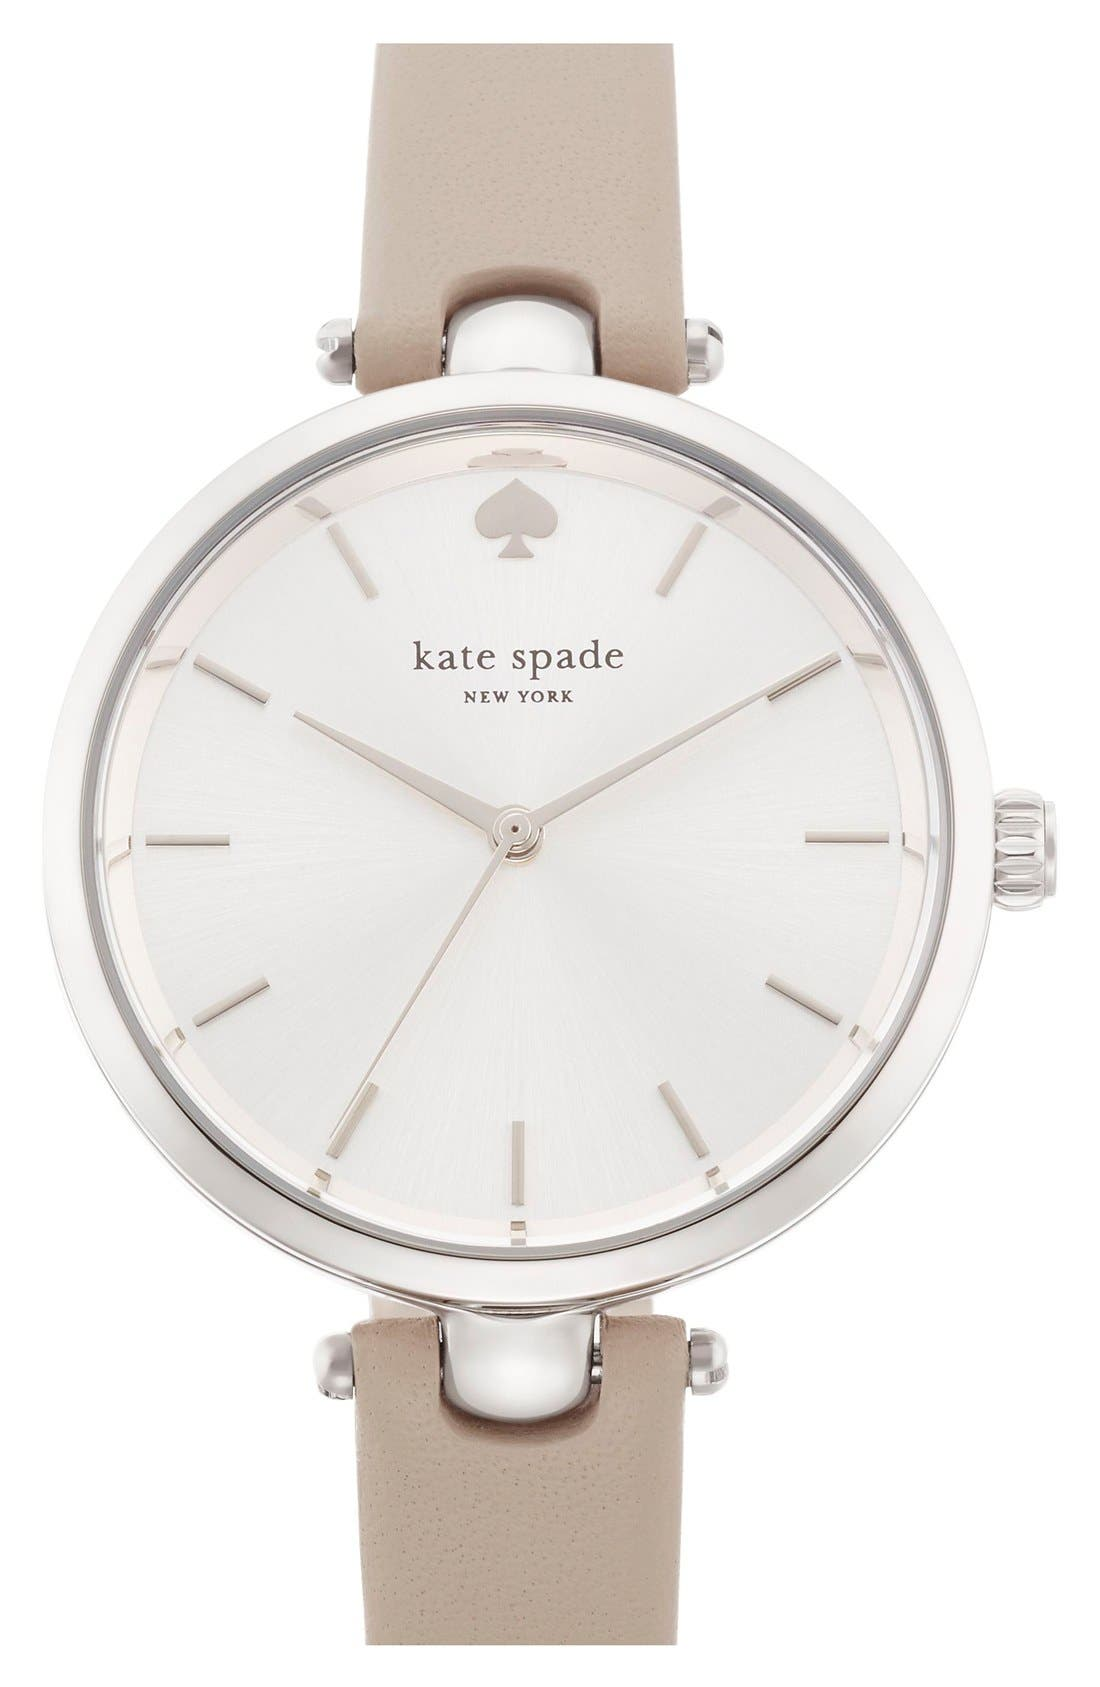 kate spade new york 'holland' round watch, 34mm